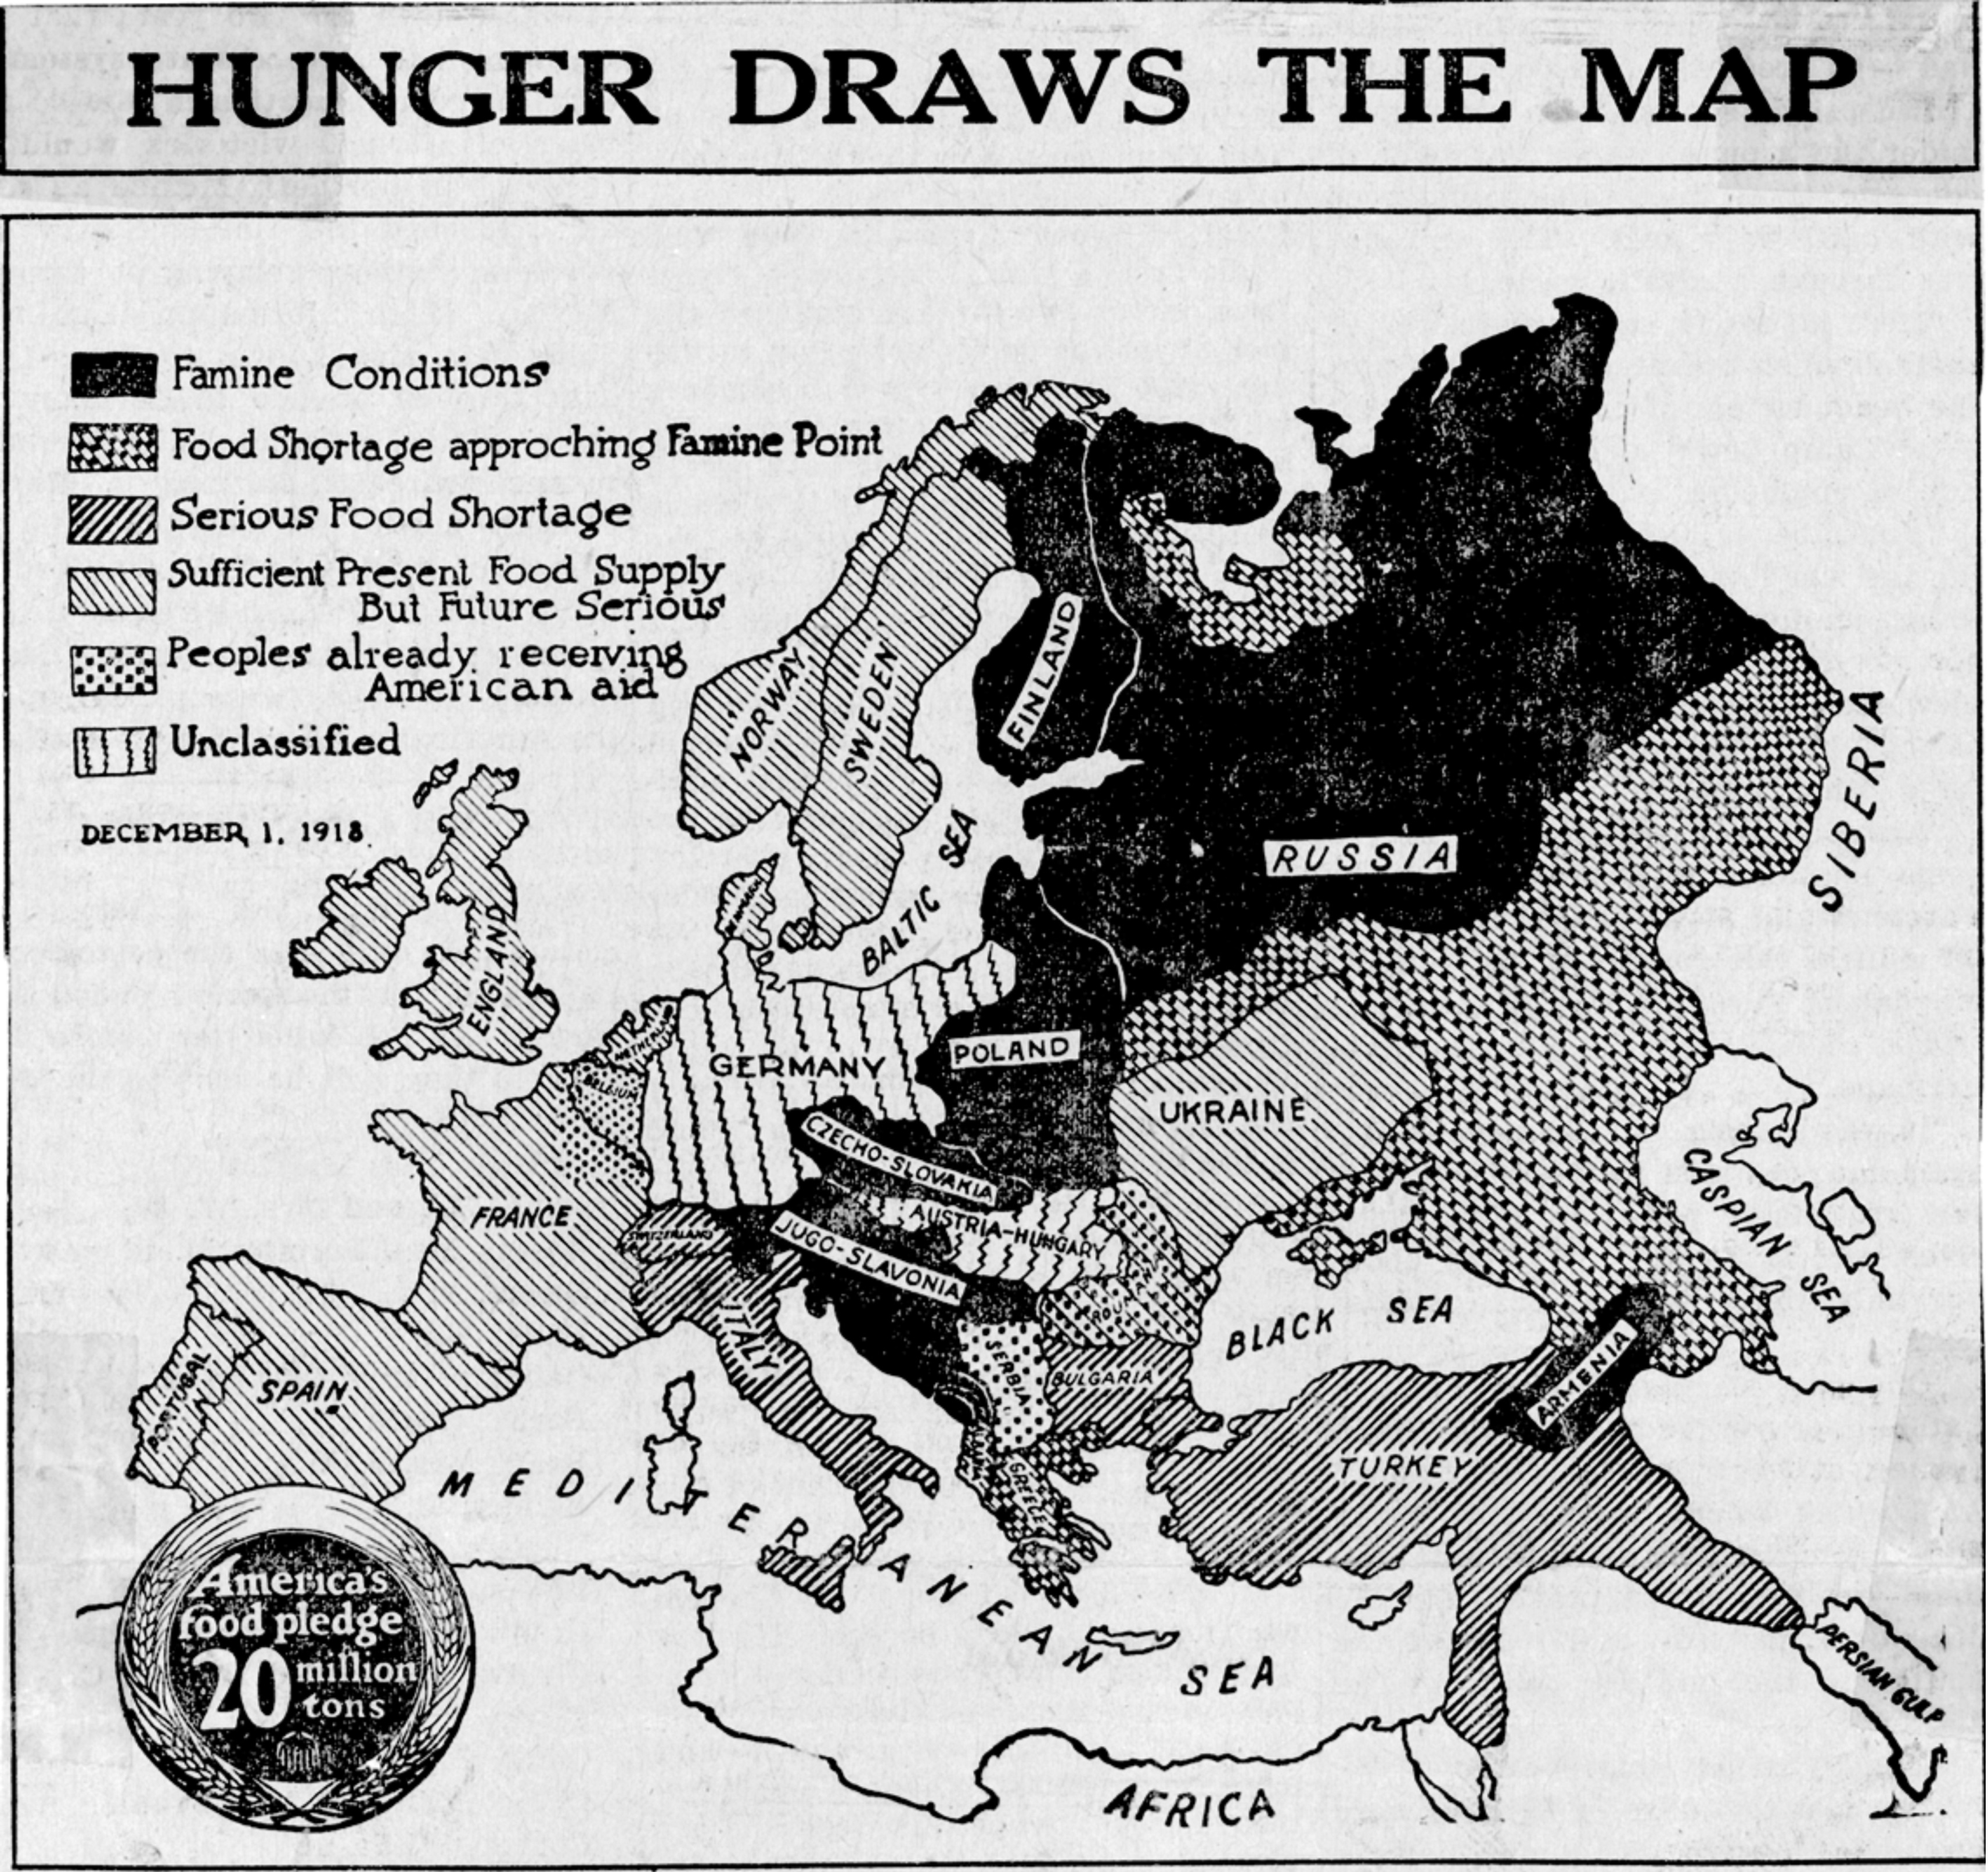 Image of Hunger Draws the Map via The Hoover Institution, Stanford